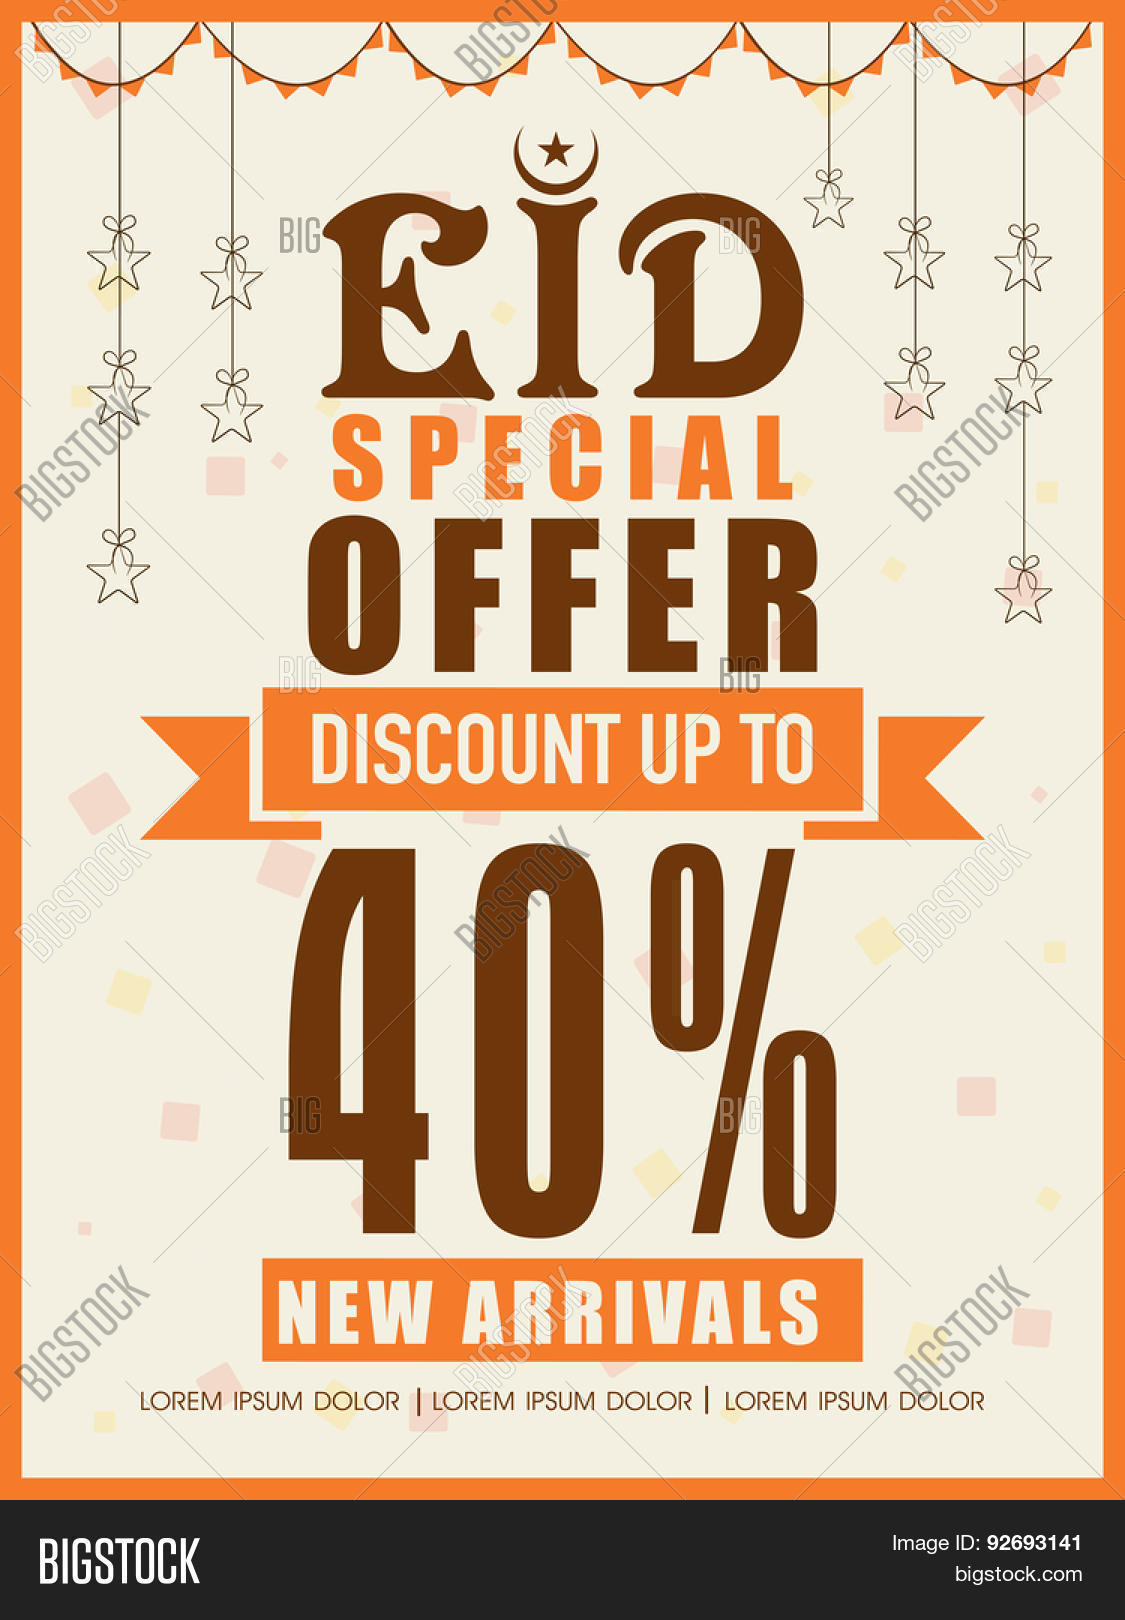 eid special offer % discount offer on new arrivals eid special offer 40% discount offer on new arrivals creative poster banner